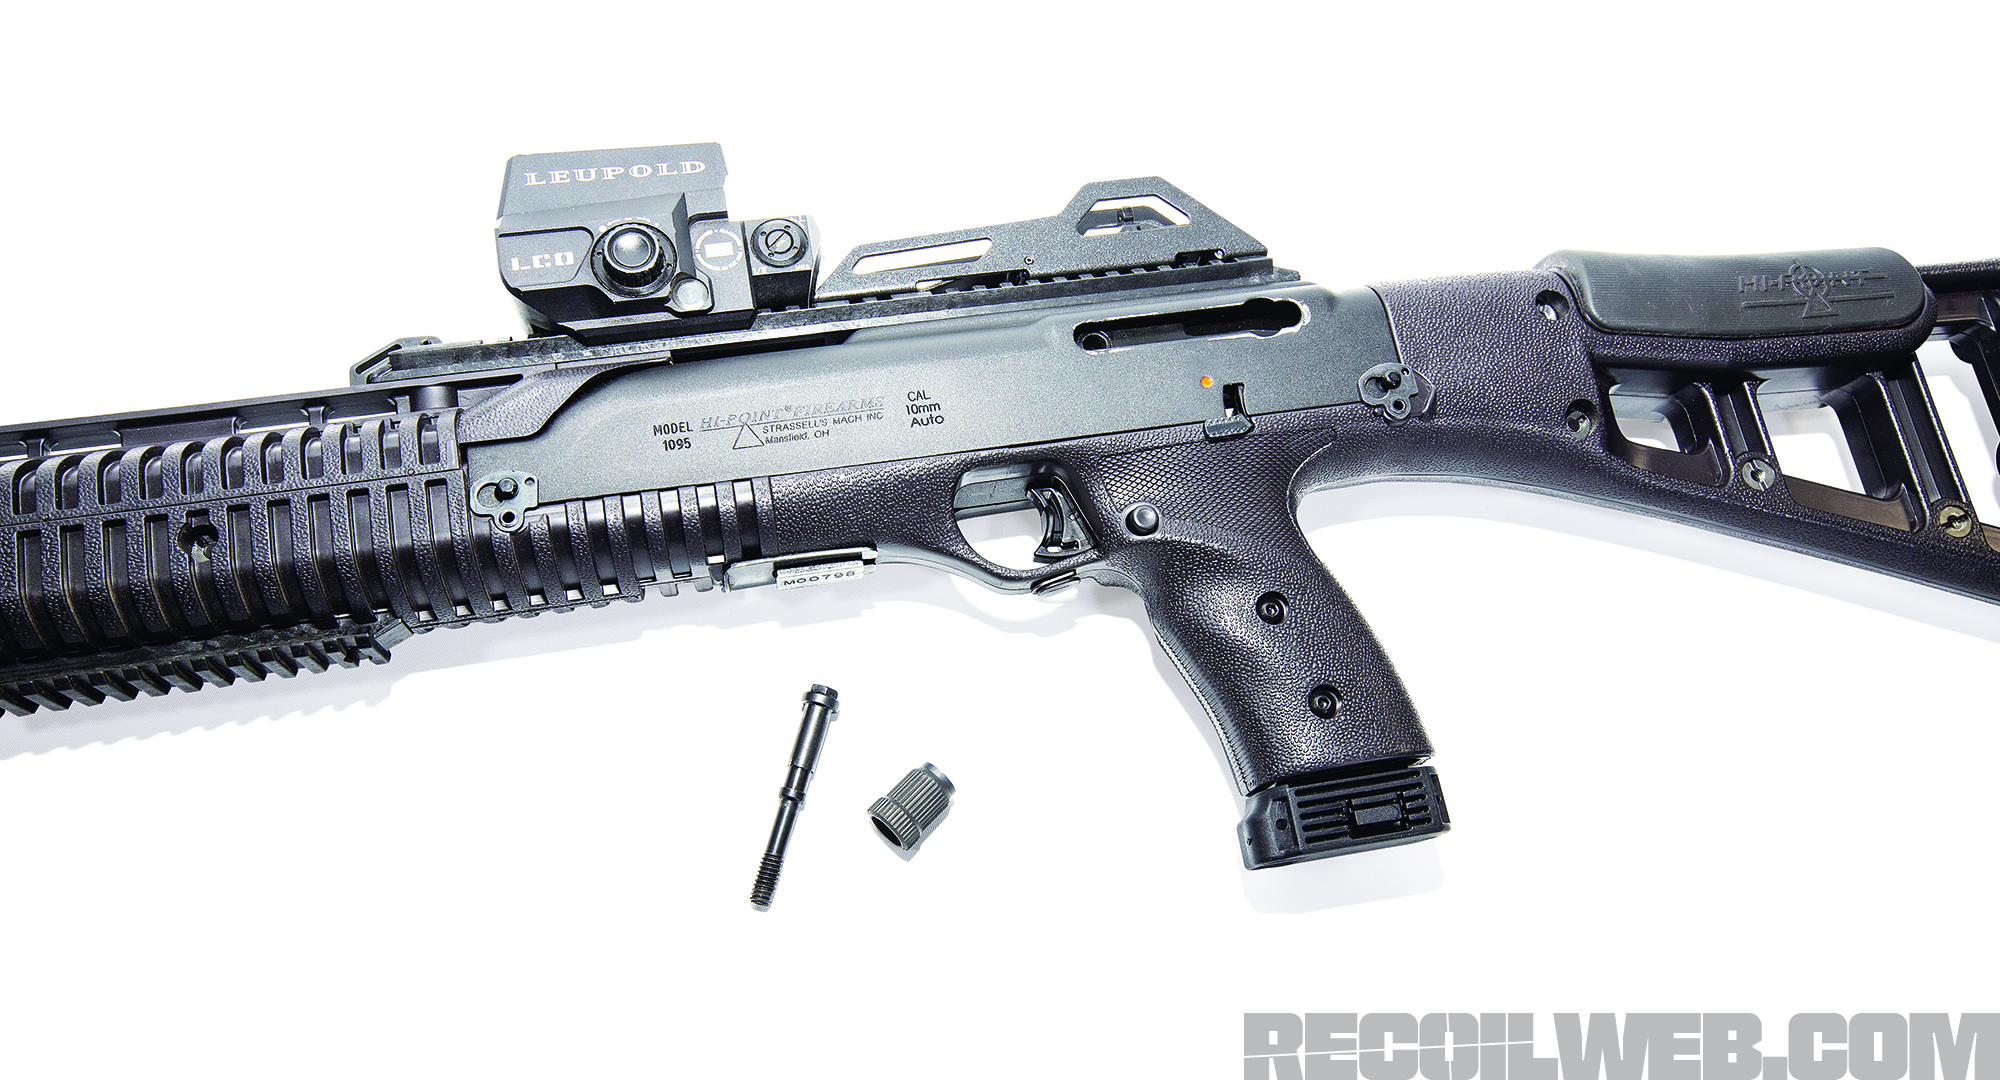 Hi-Point 10mm Carbine - Quality Garbage | RECOIL